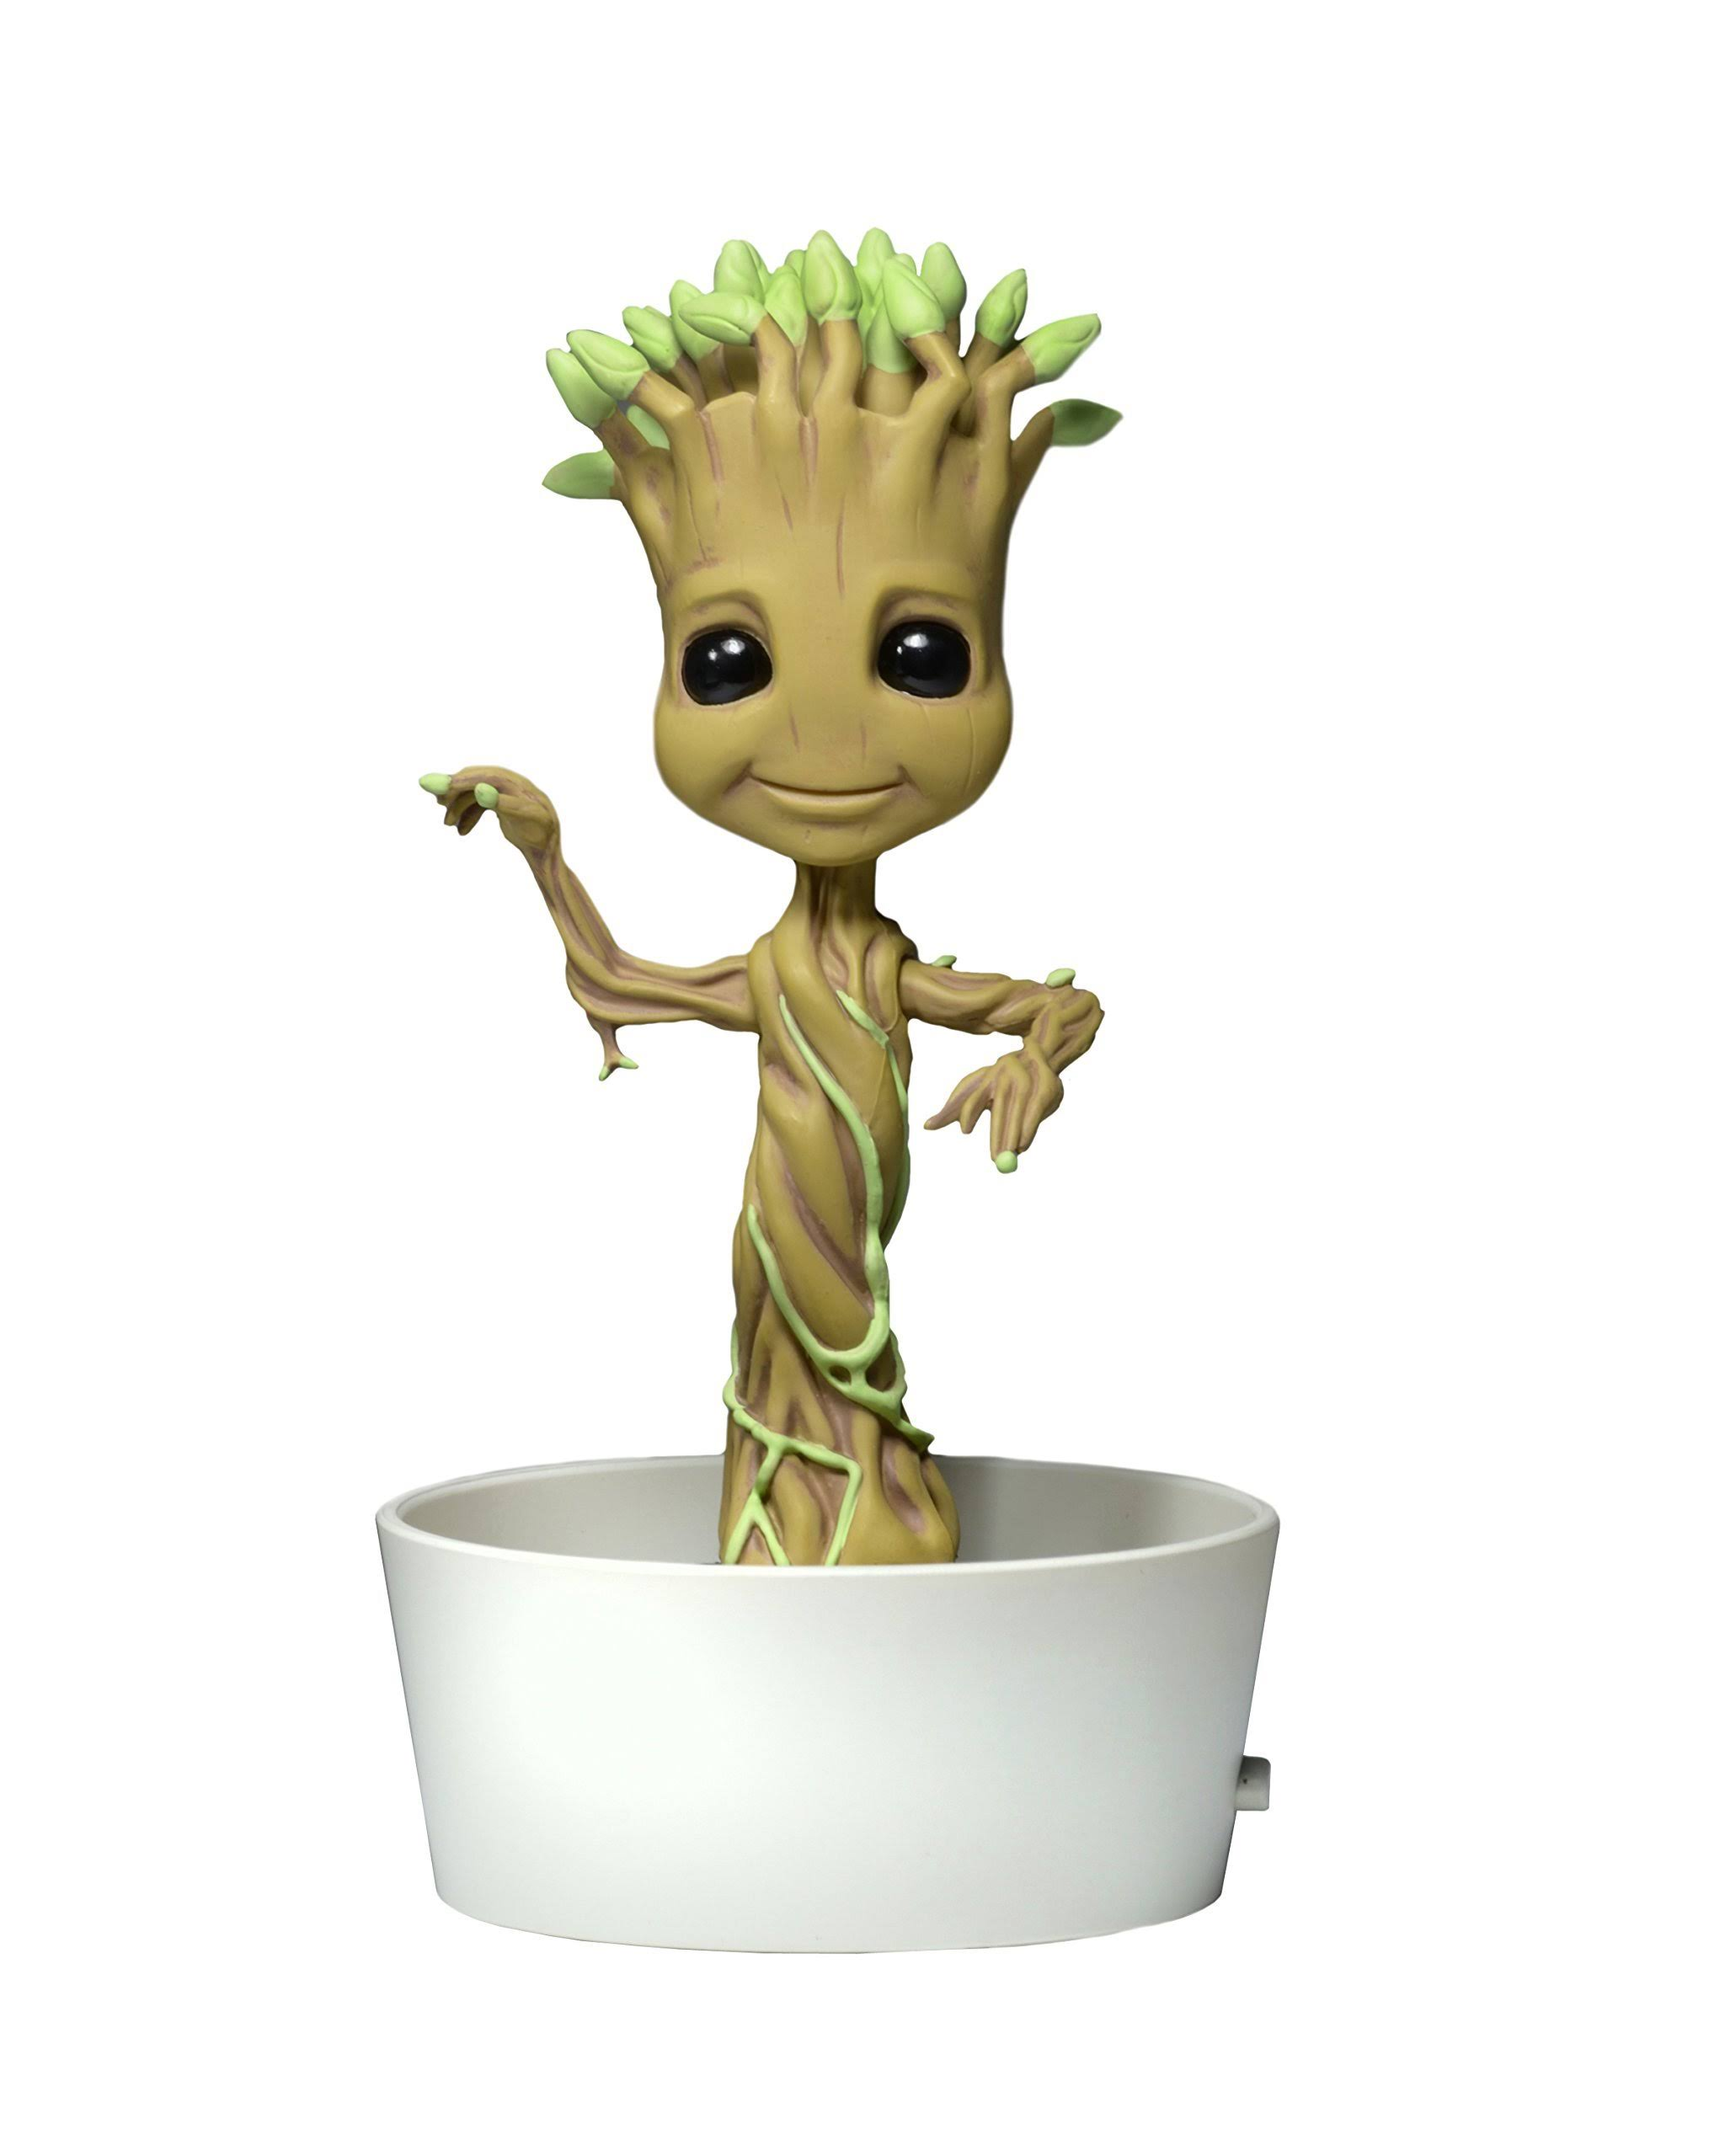 Neca Body Knocker Marvel Guardians of The Galaxy Dancing Potted Groot Action Figure Toy